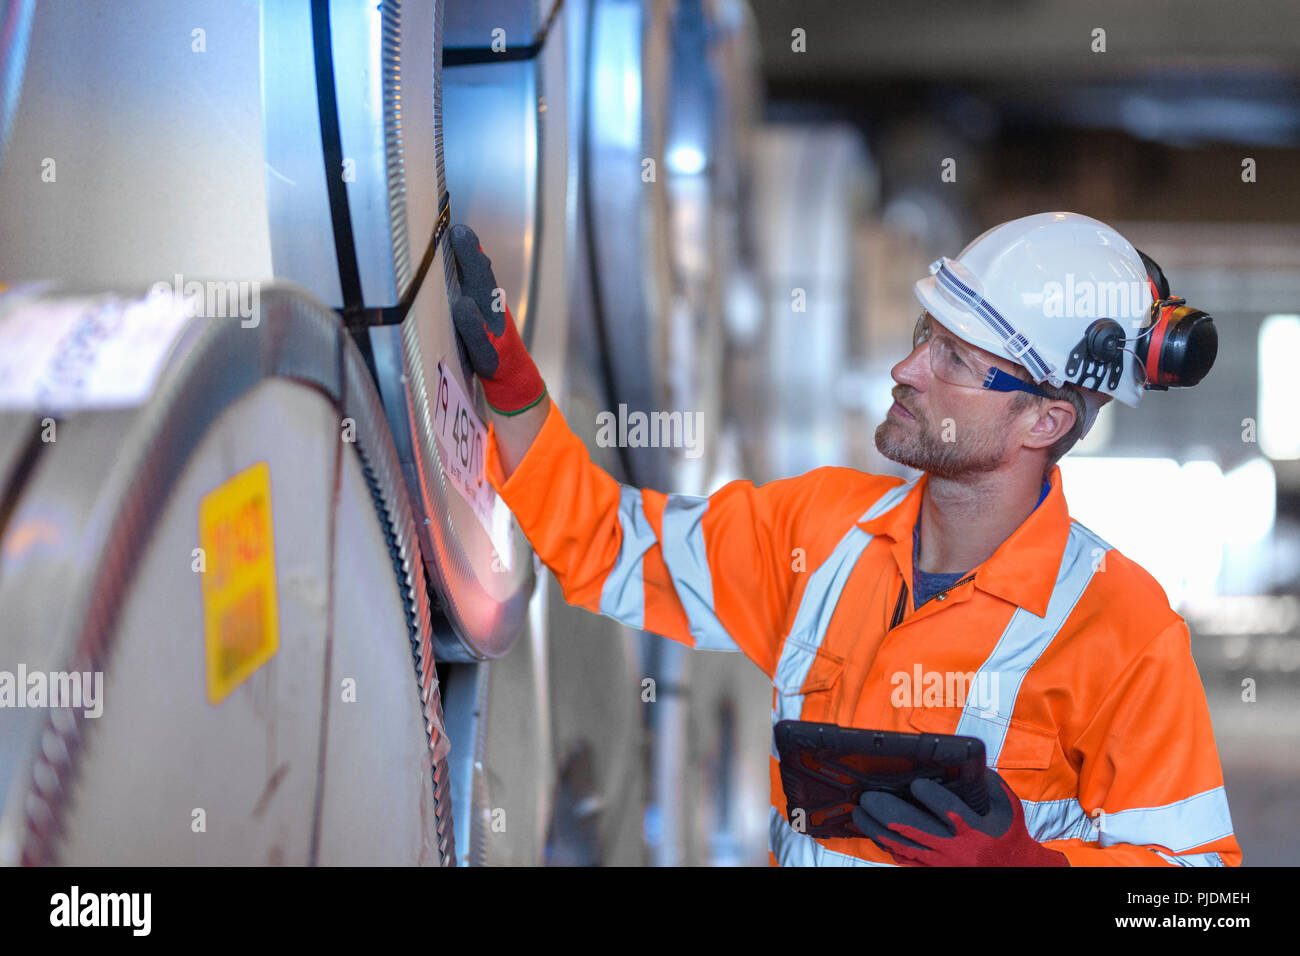 Worker using digital tablet to inspect rows of sheet steel in storage at port - Stock Image